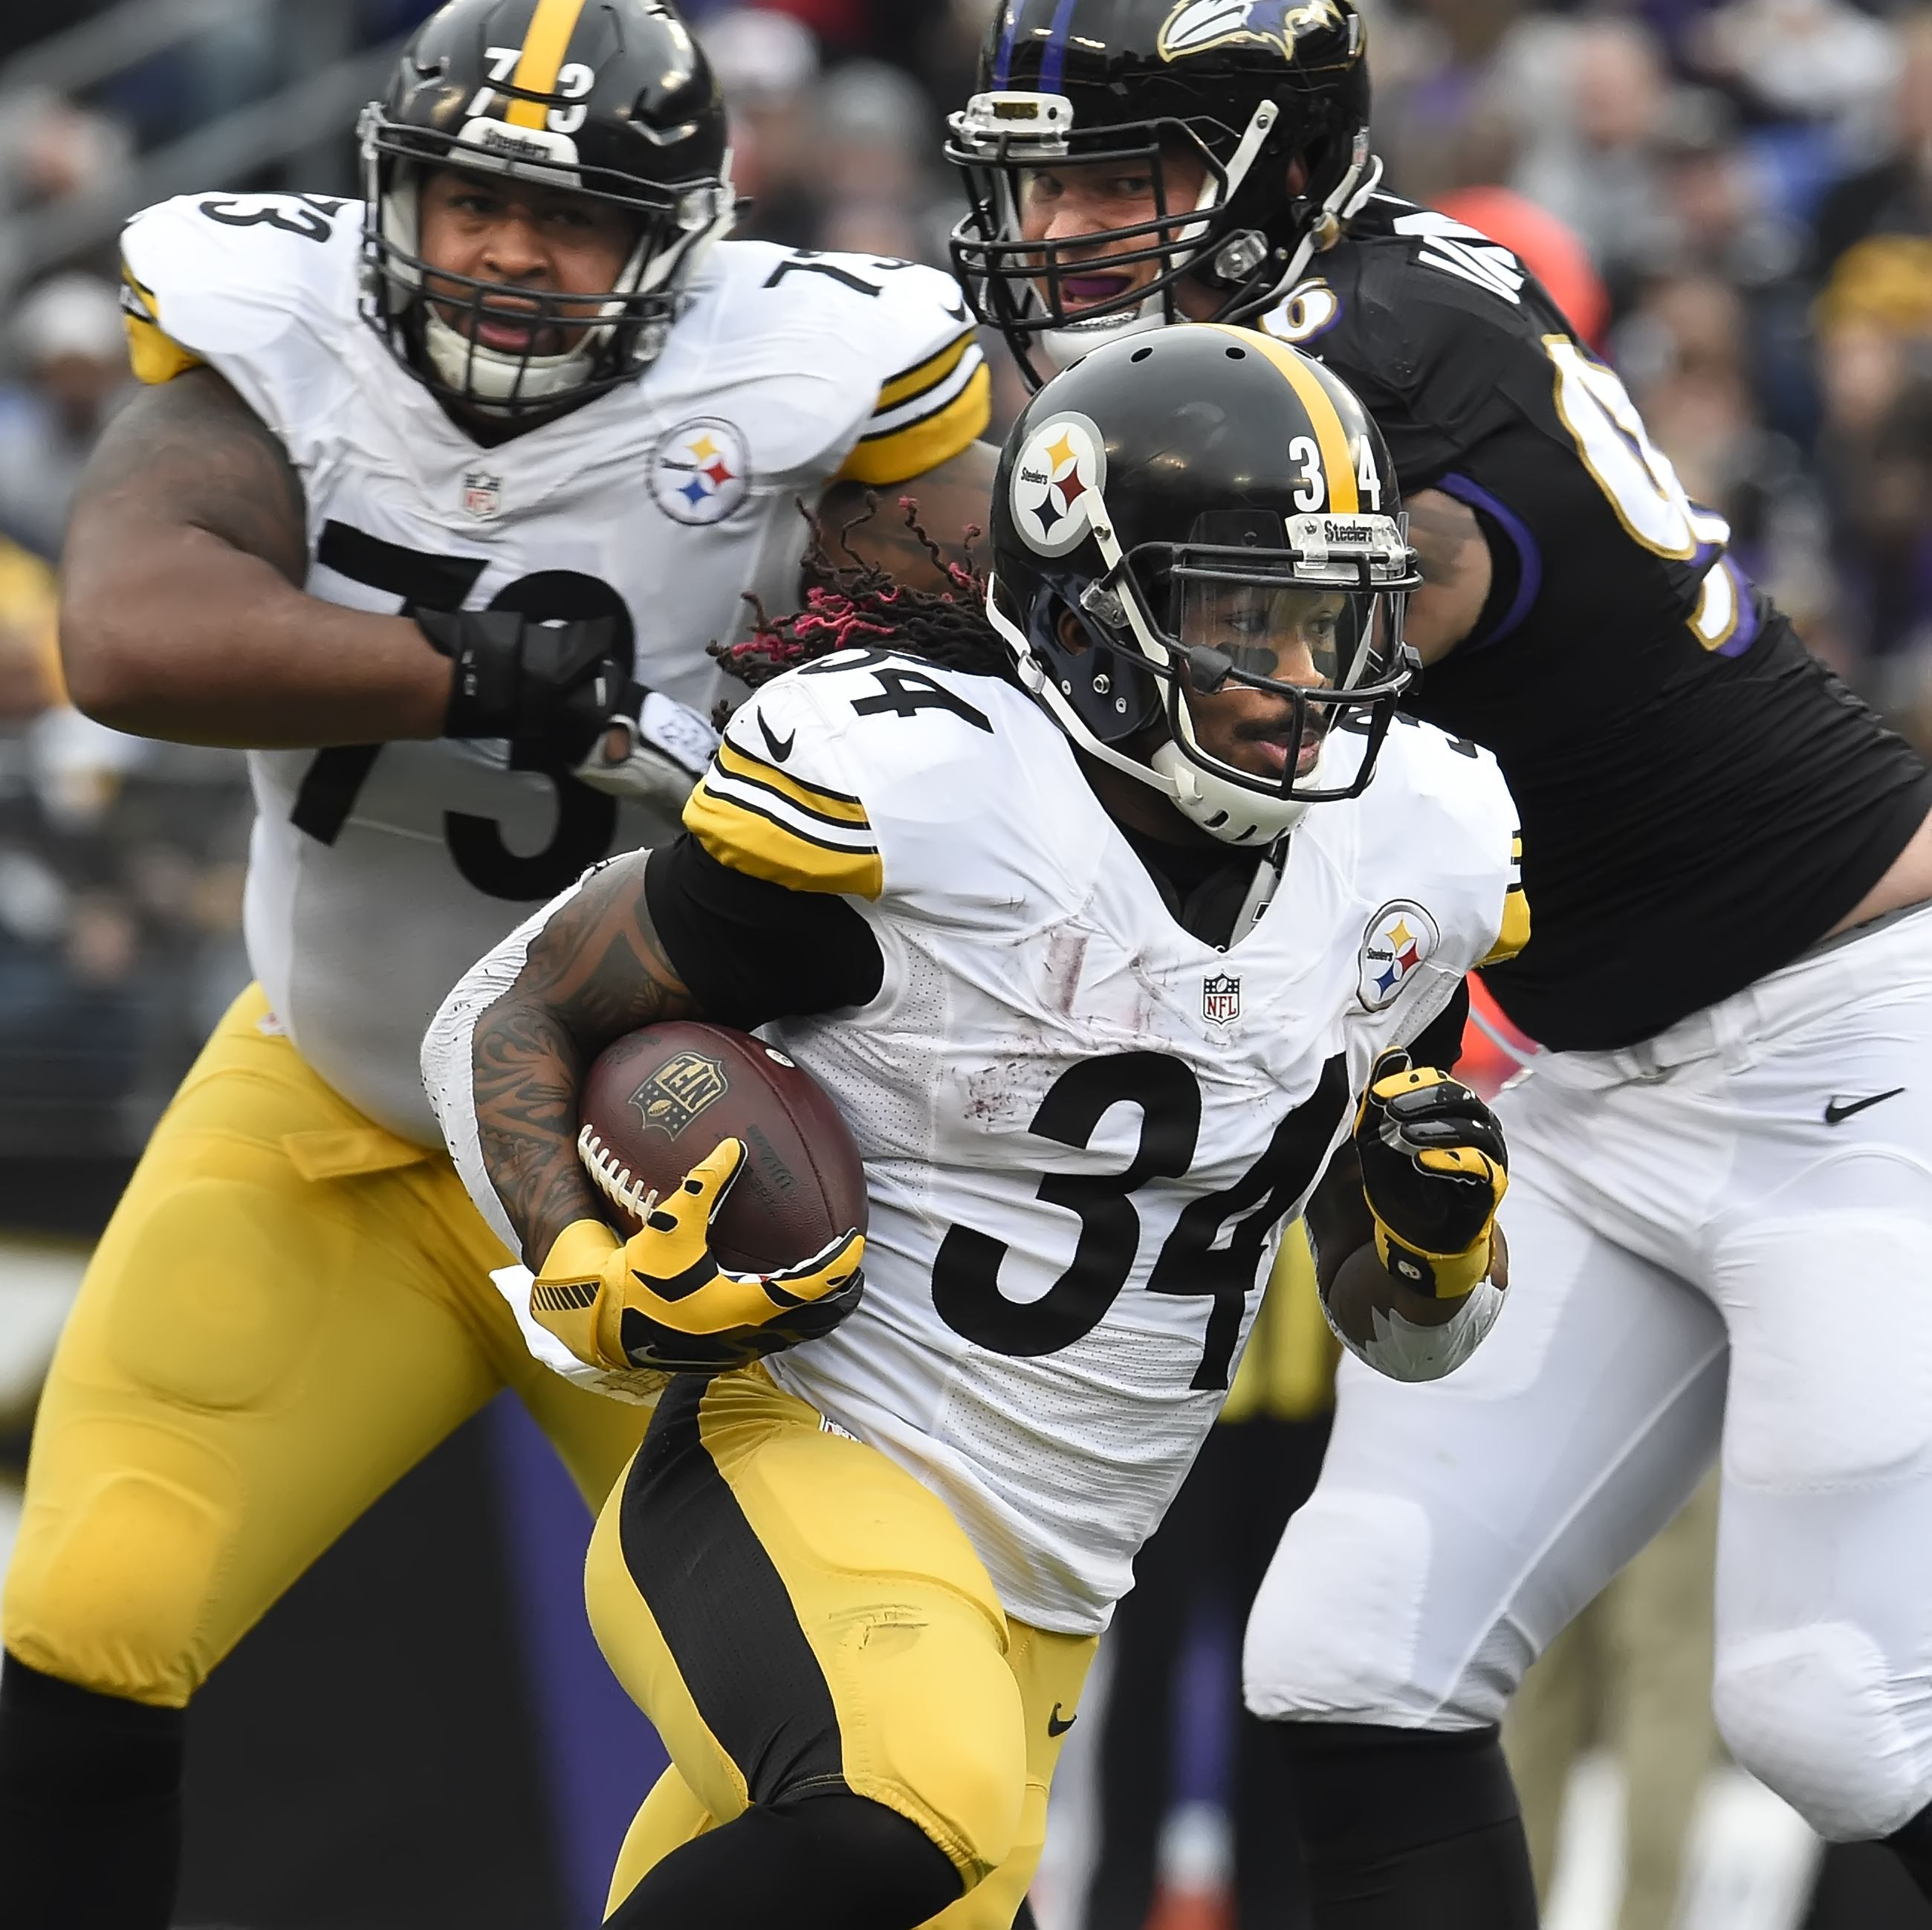 Ron Cook: Despite painful loss Sunday at Denver, some Steelers already looking toward 2016